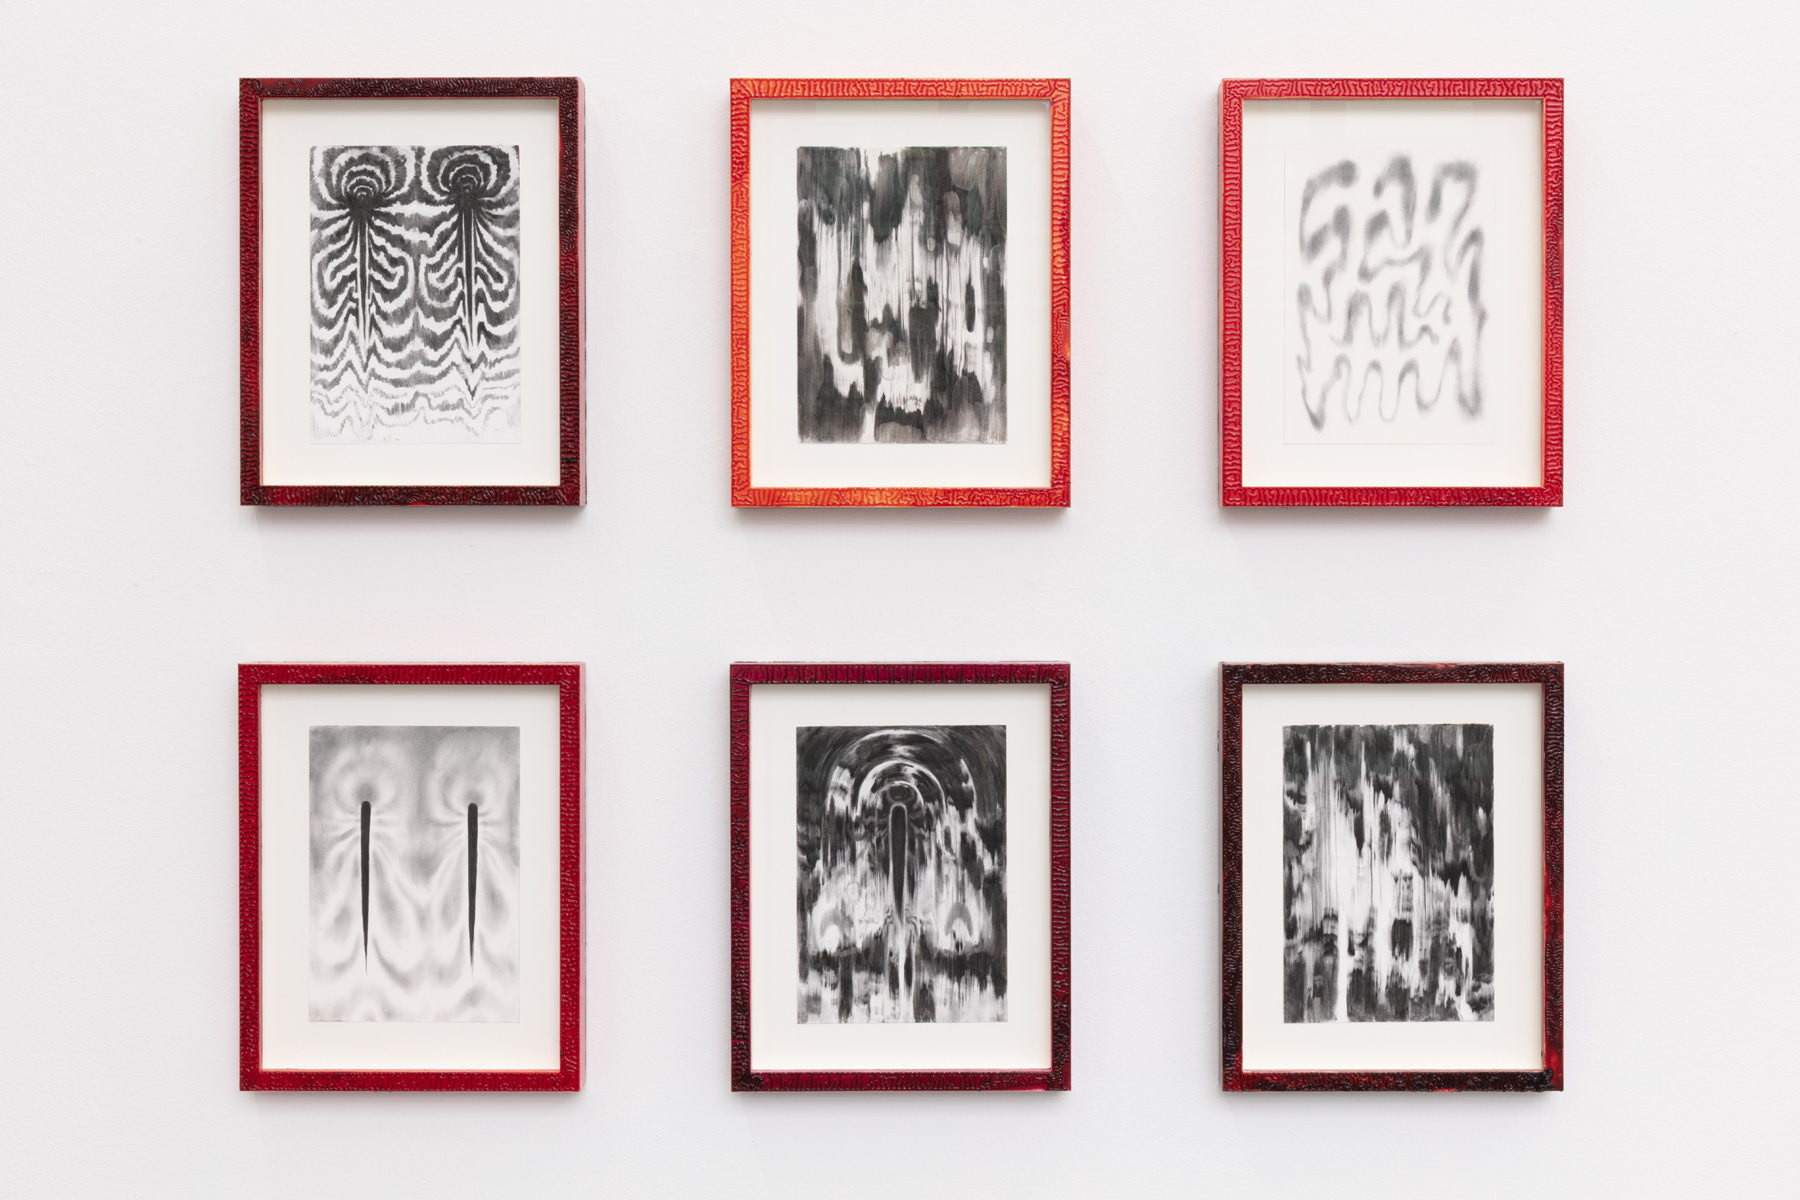 """Julia Selin_""""Moth shifts"""", 2020, carbon drawings, linseed oil on pine frame, 42,5 x 33,5 cm x 6"""